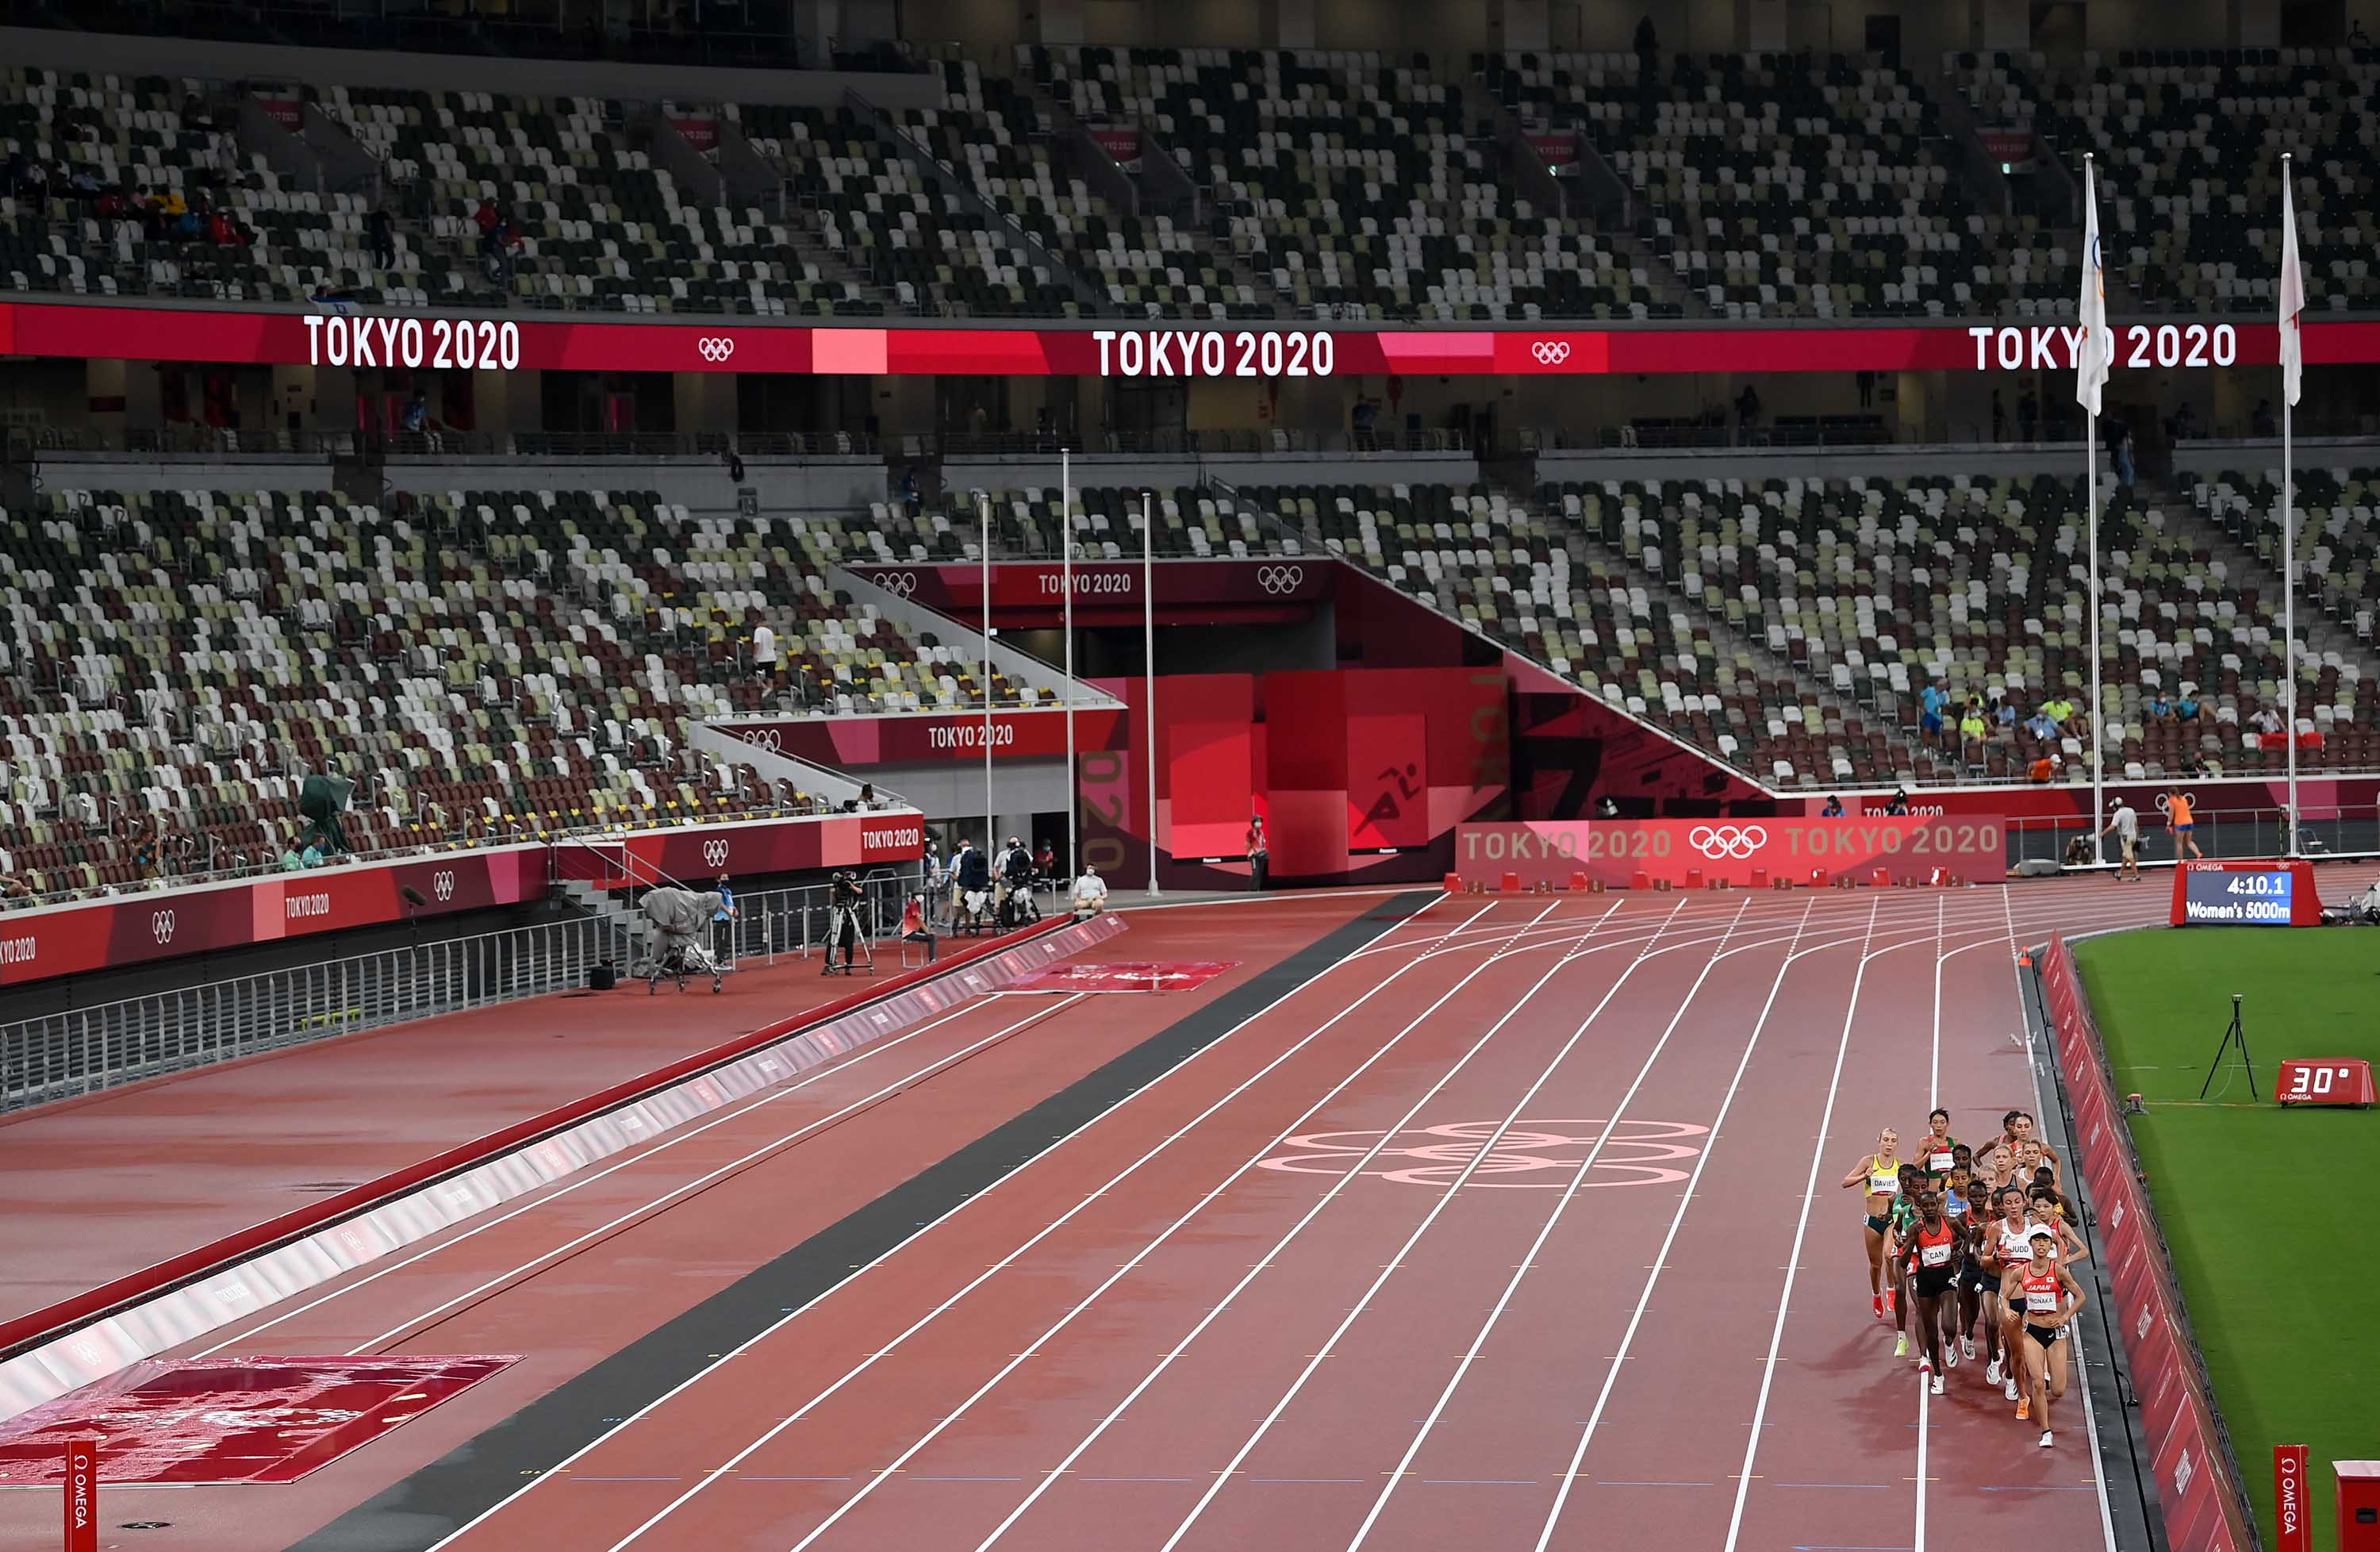 A general view shows empty stands during the first of the women's 5,000m heats at the Olympic Stadium in Tokyo on Friday.